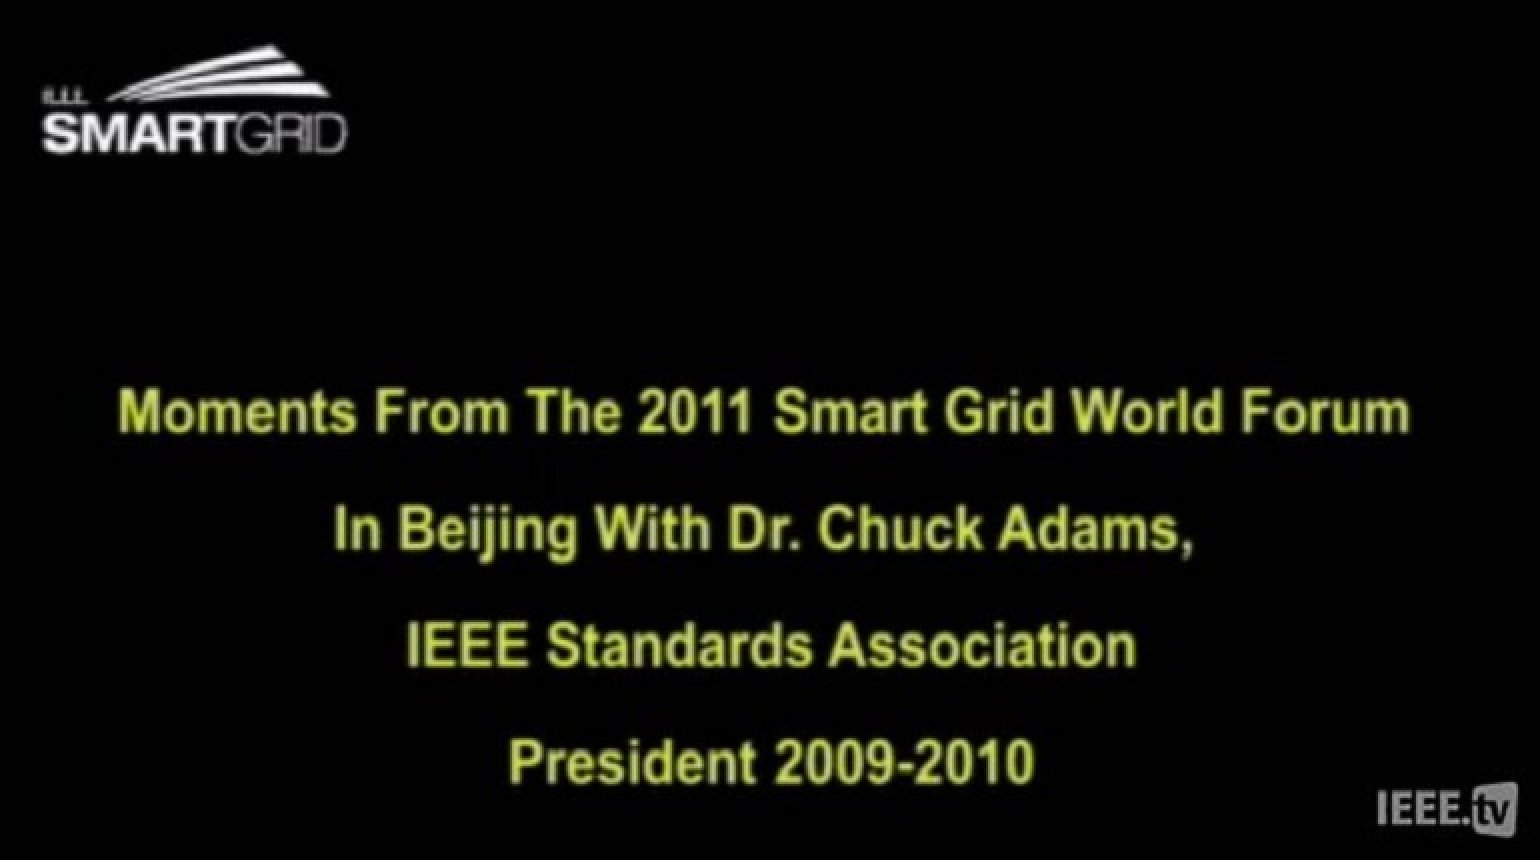 Challenging in the Developing Smart Grid: Chuck Adams